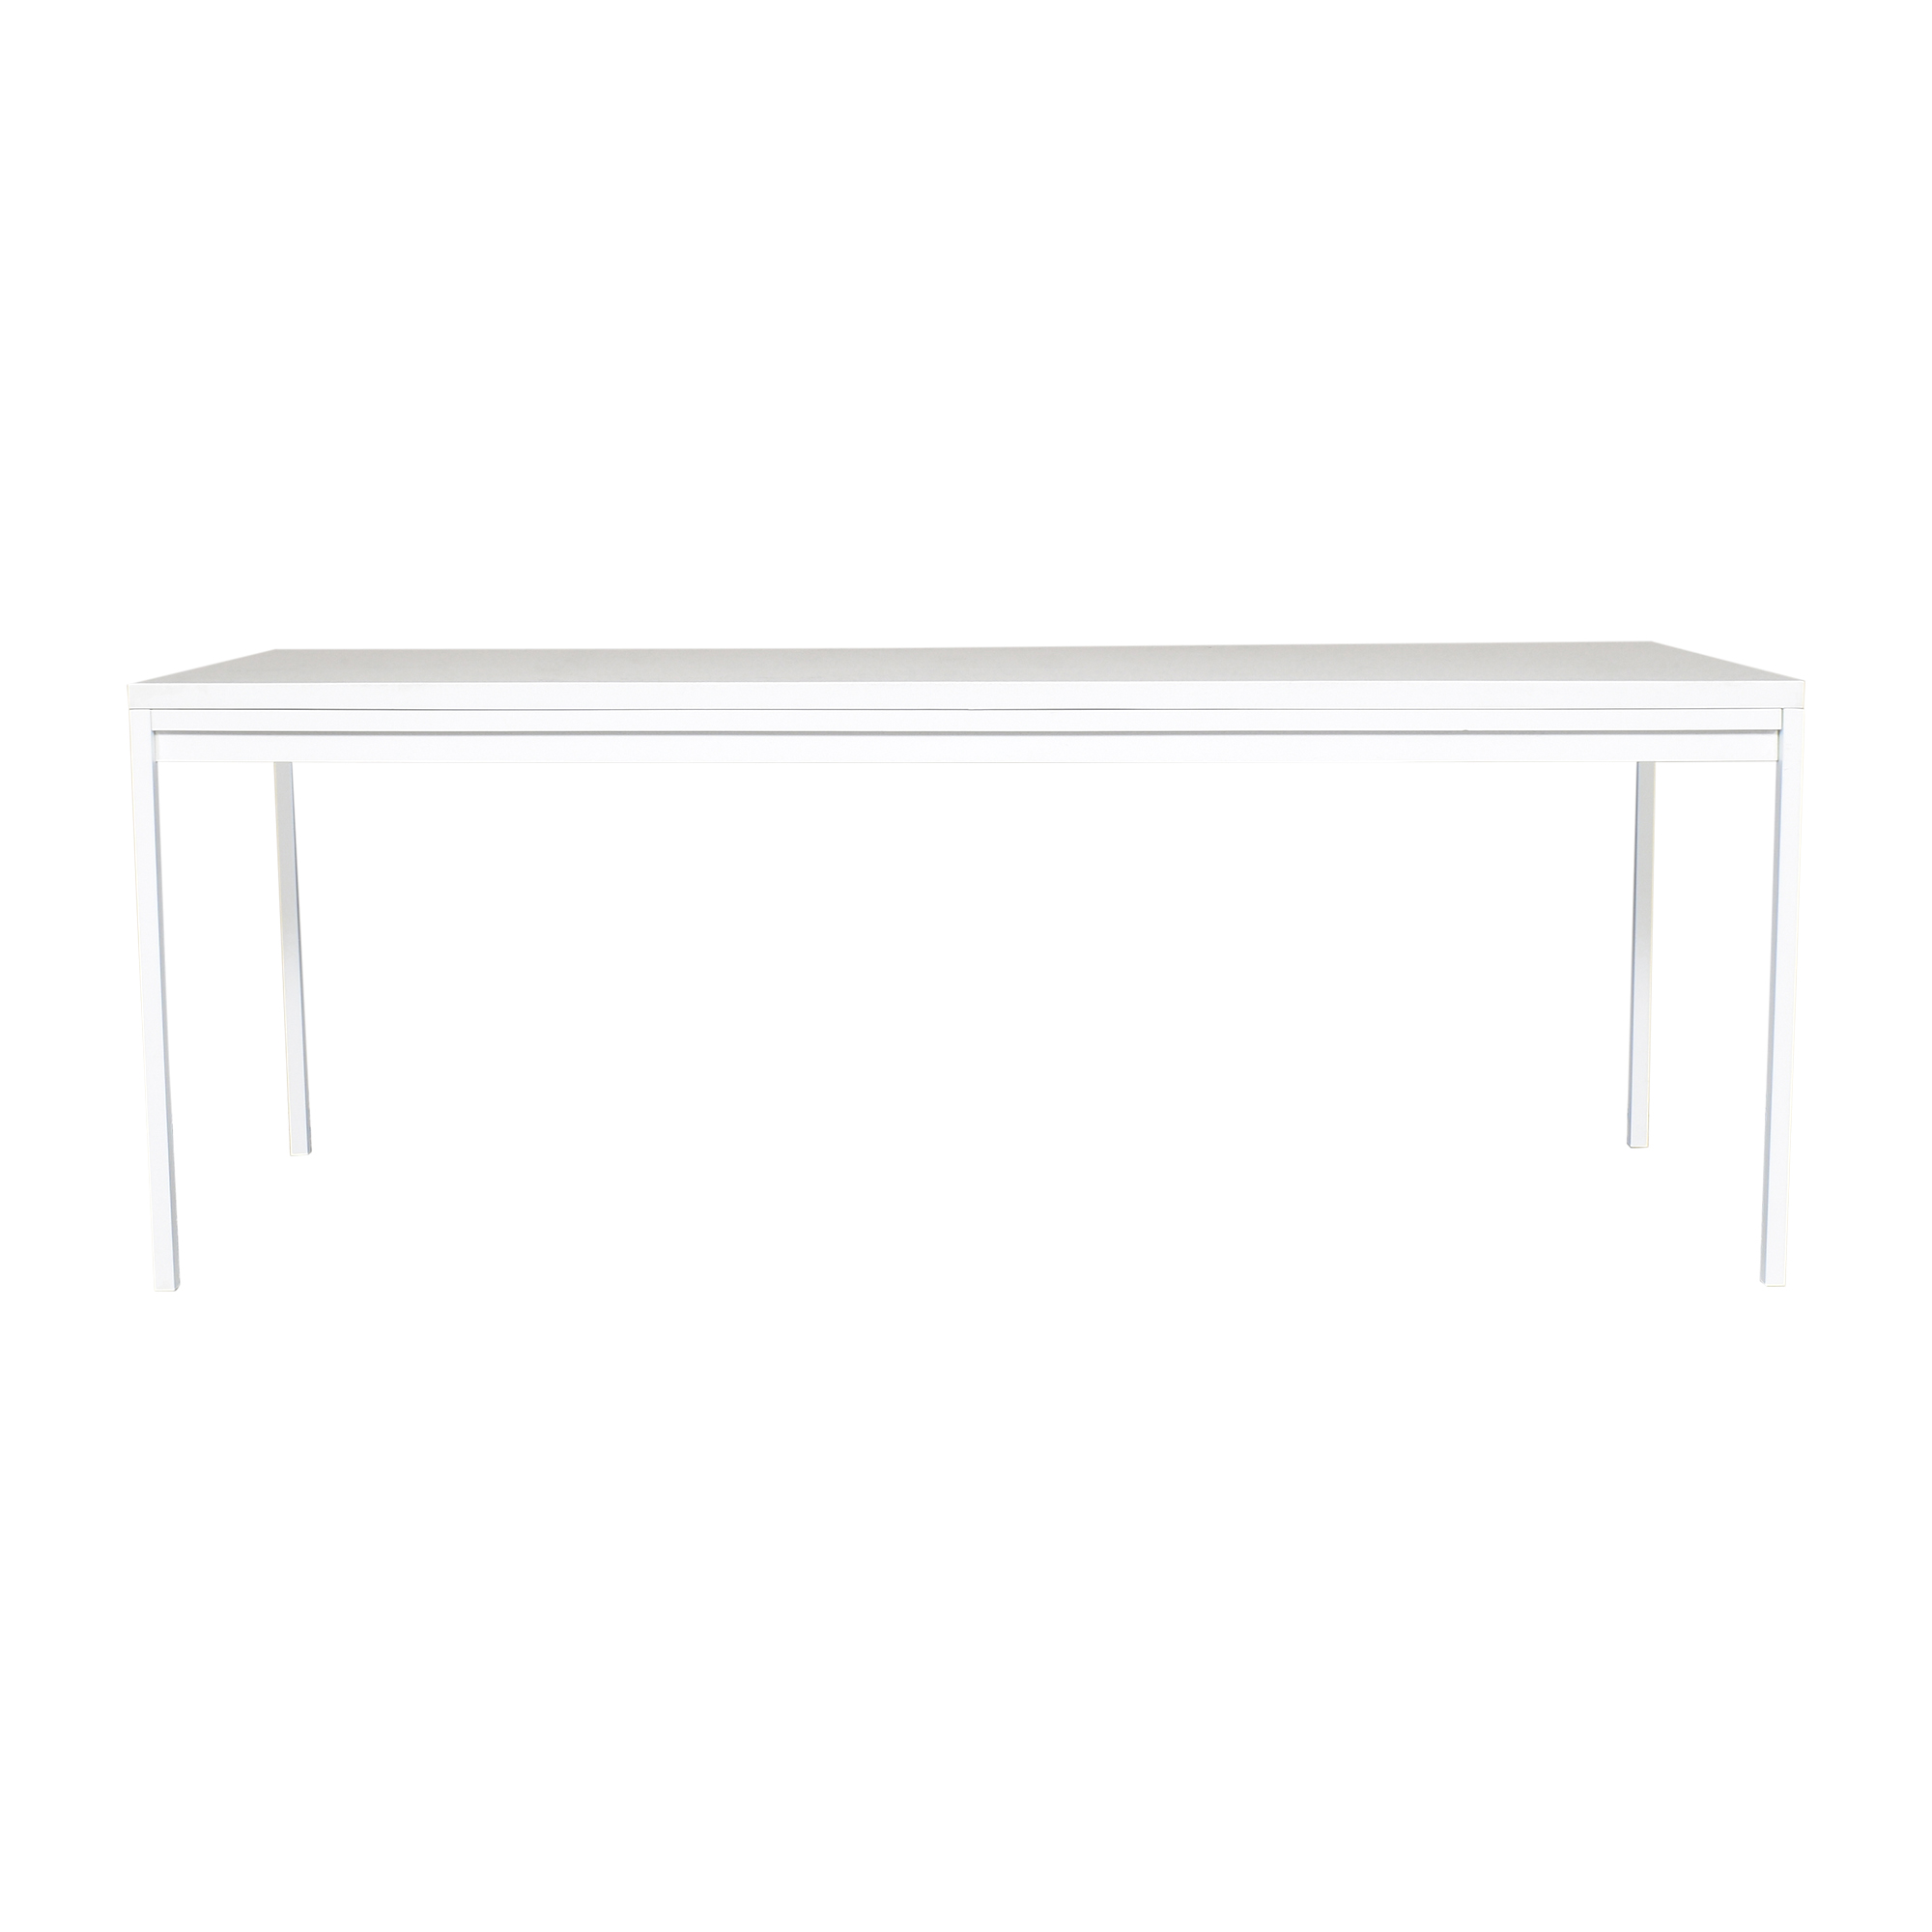 Crate & Barrel Crate & Barrel Casement Solid Surface Dining Table used